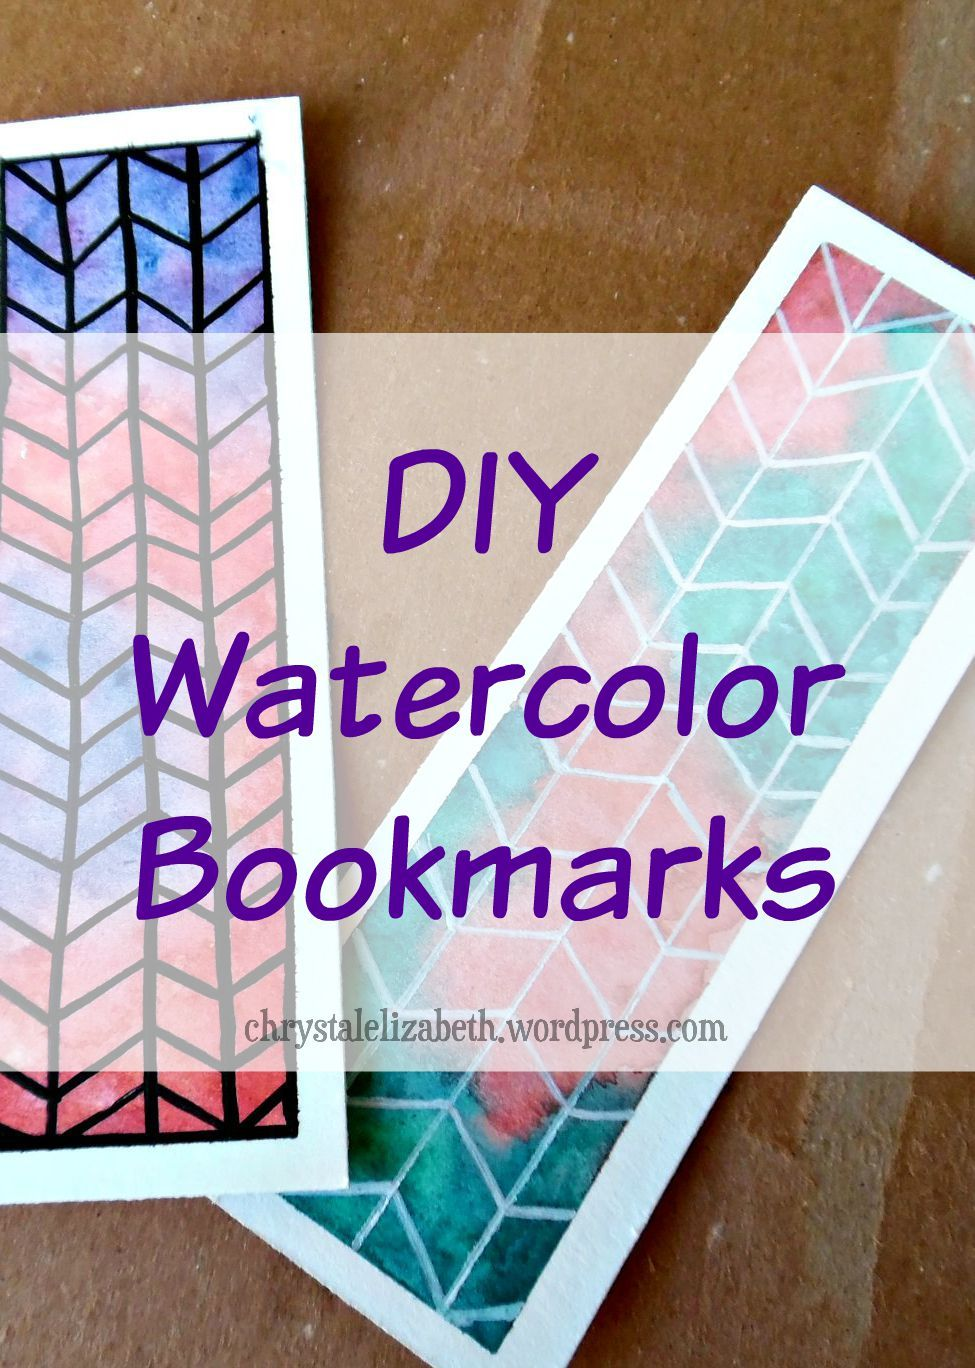 Diy Watercolor Bookmark Chrystalelizabeth Watercolor Bookmarks